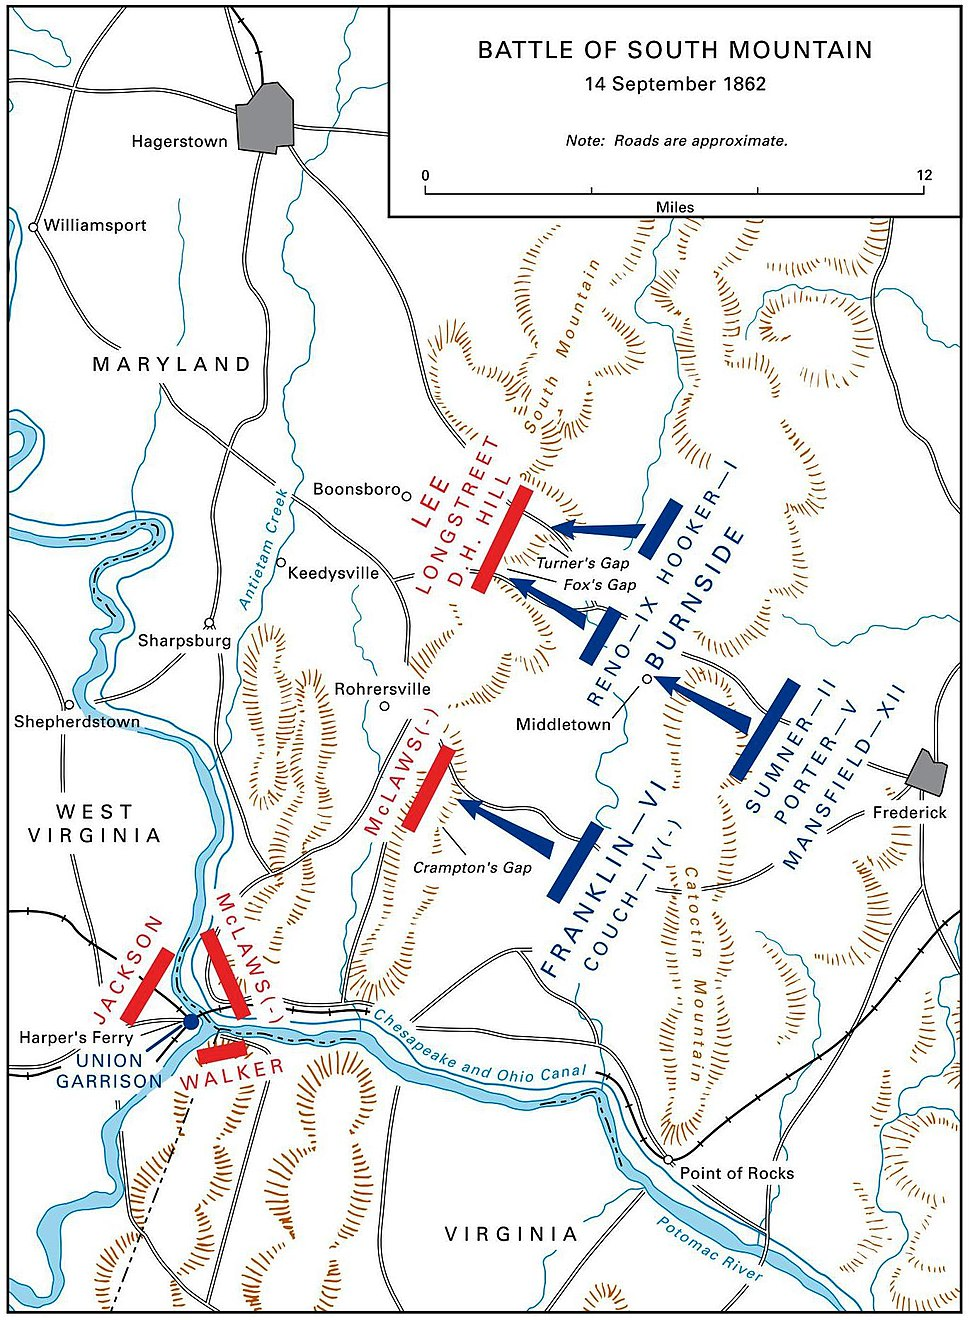 US ARMY MARYLAND CAMPAIGN MAP 3 (SOUTH MOUNTAIN)